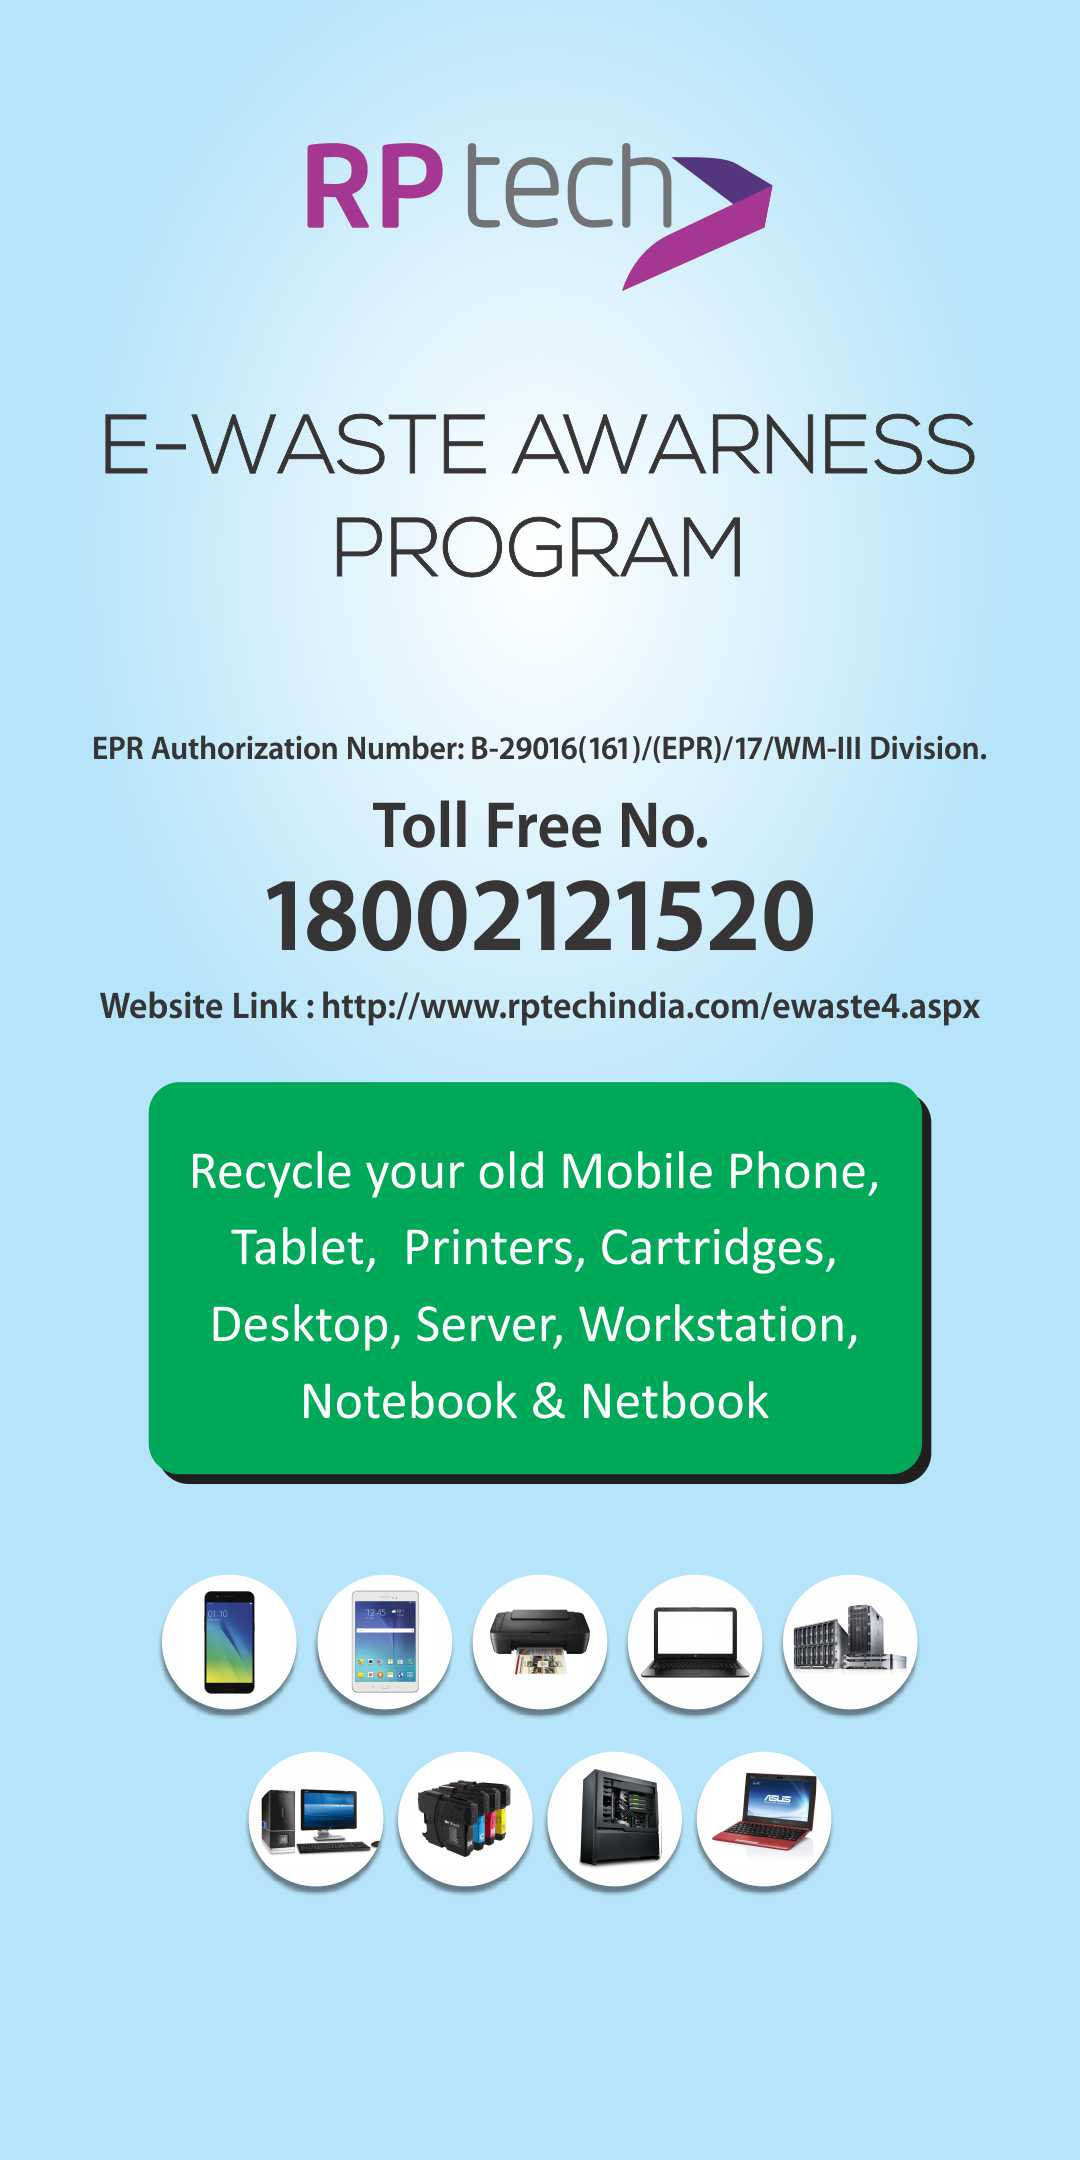 RP tech India Opens 50 E-Waste Collection Centers Pan India